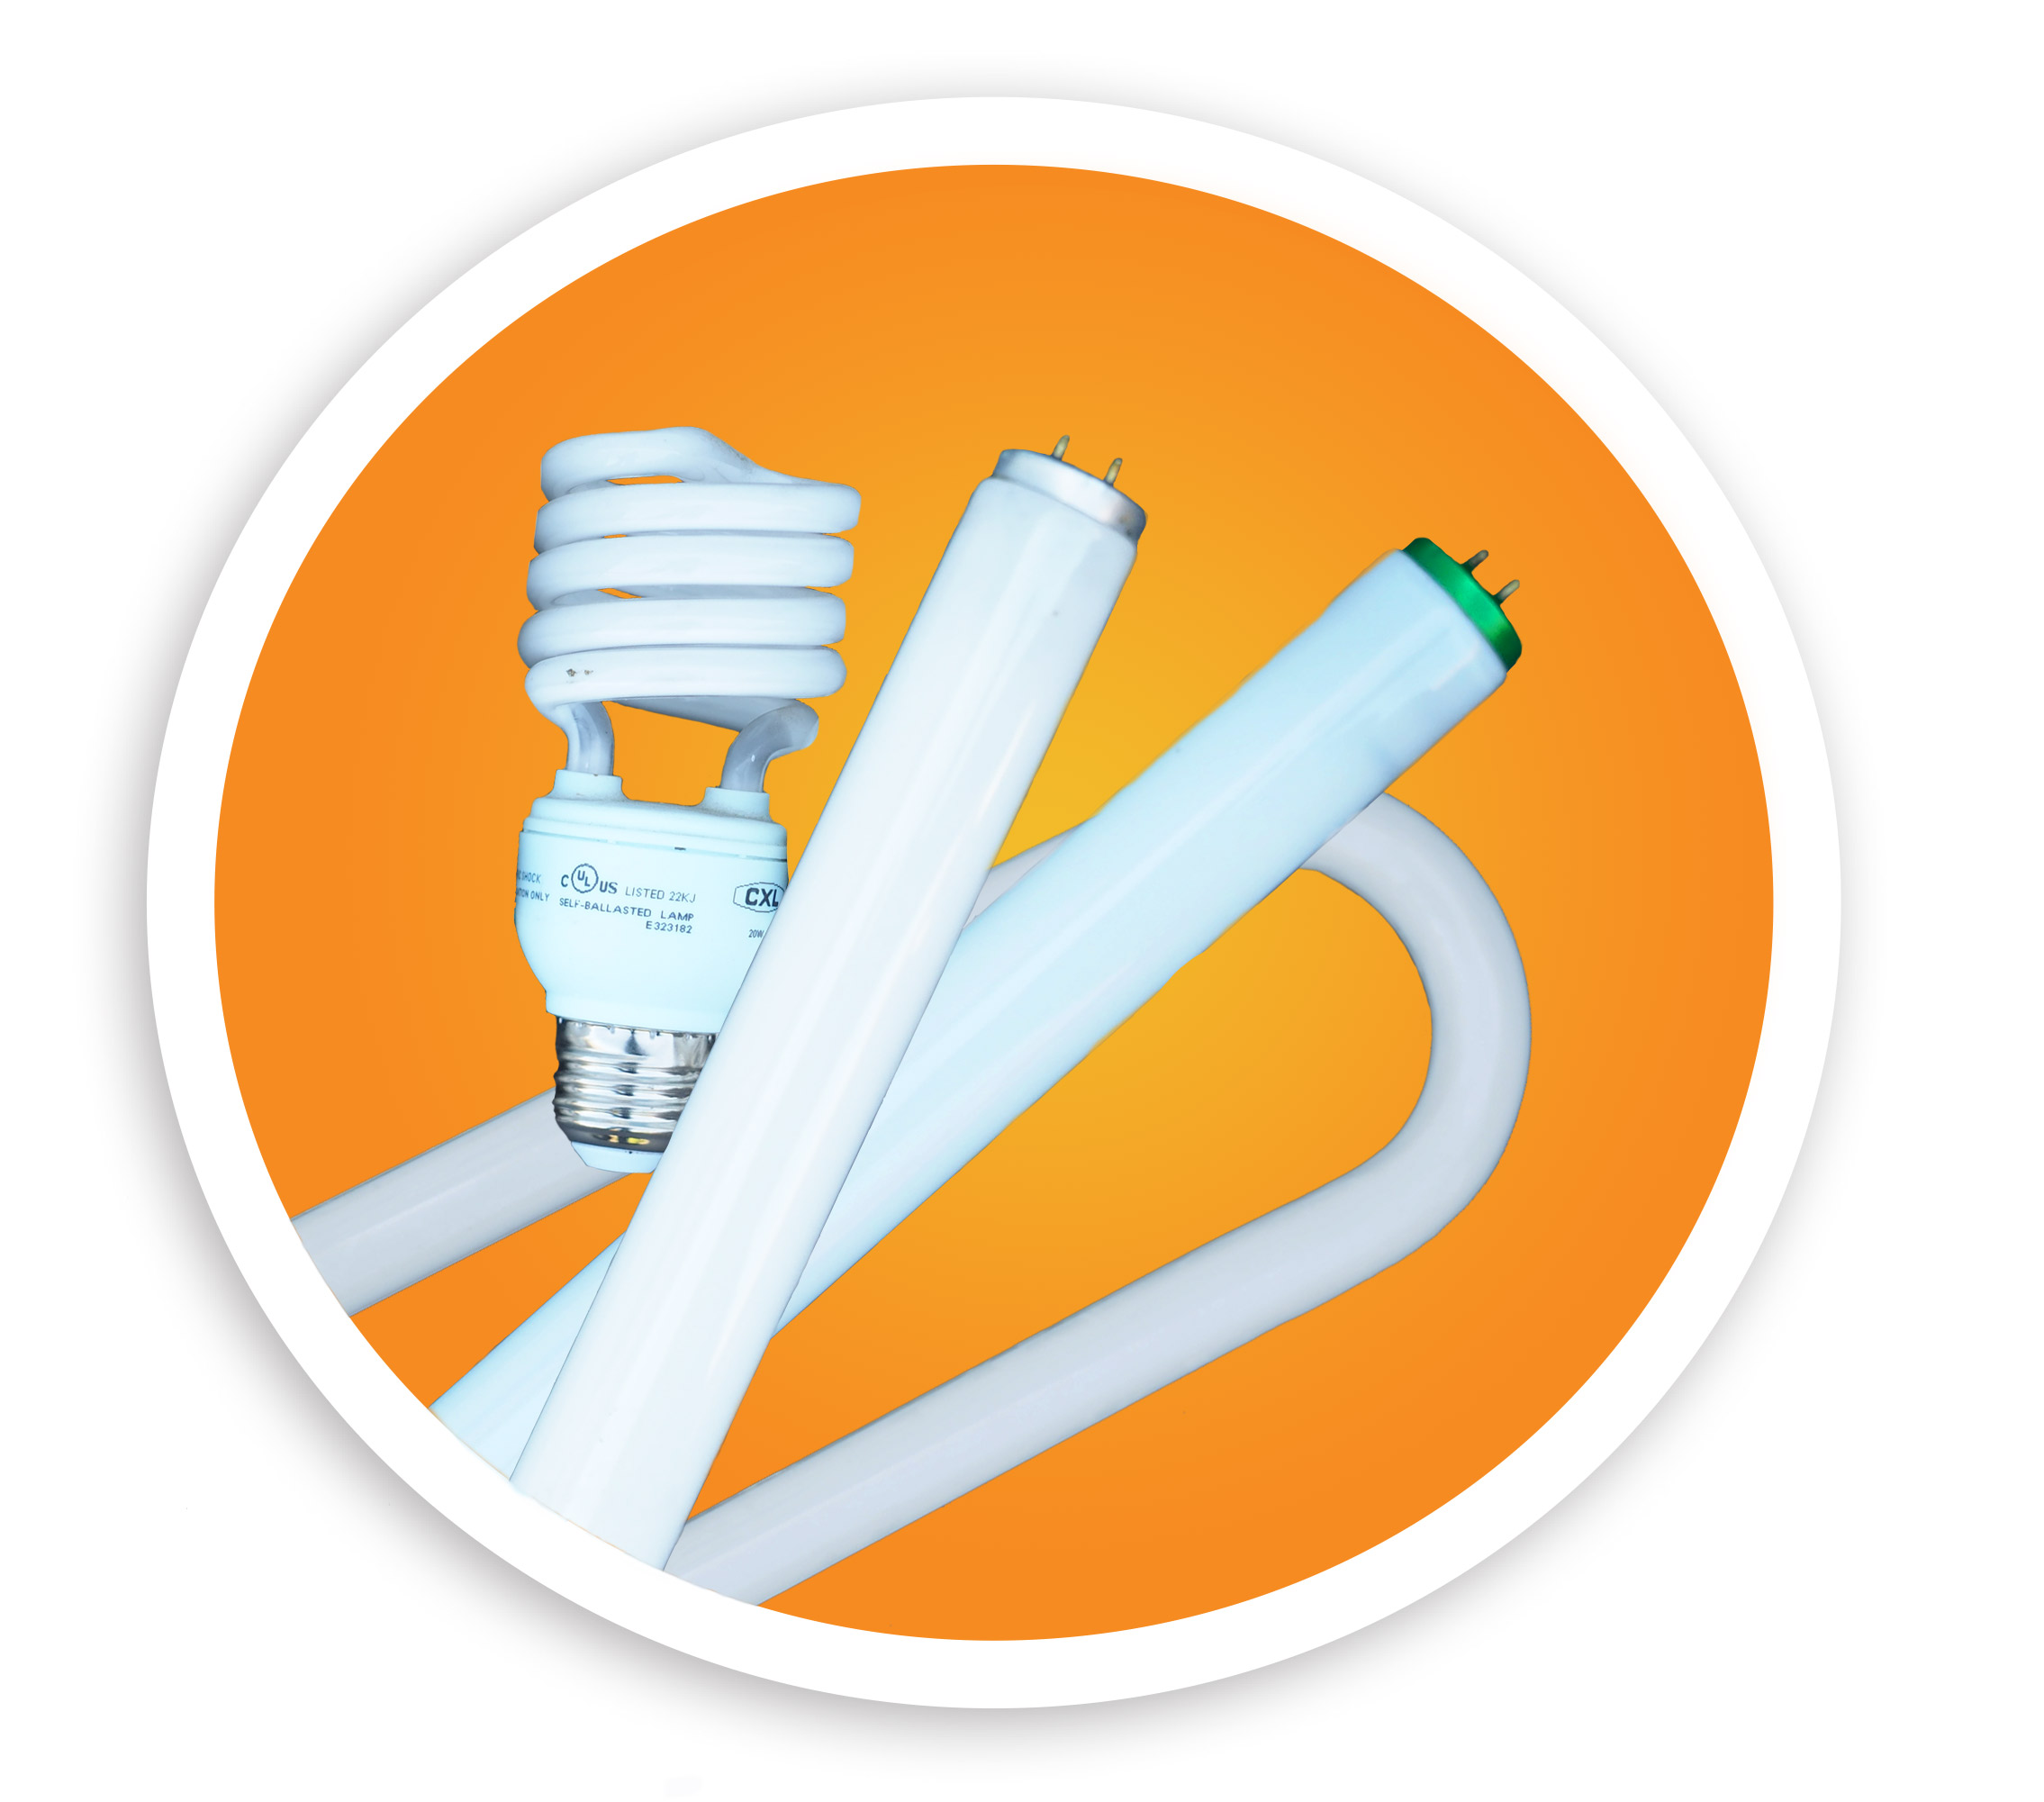 Picture of a CFL bulb, two linear lamps, and a U-lamp. NLR recycles many styles of mercury containing lamps and bulbs.